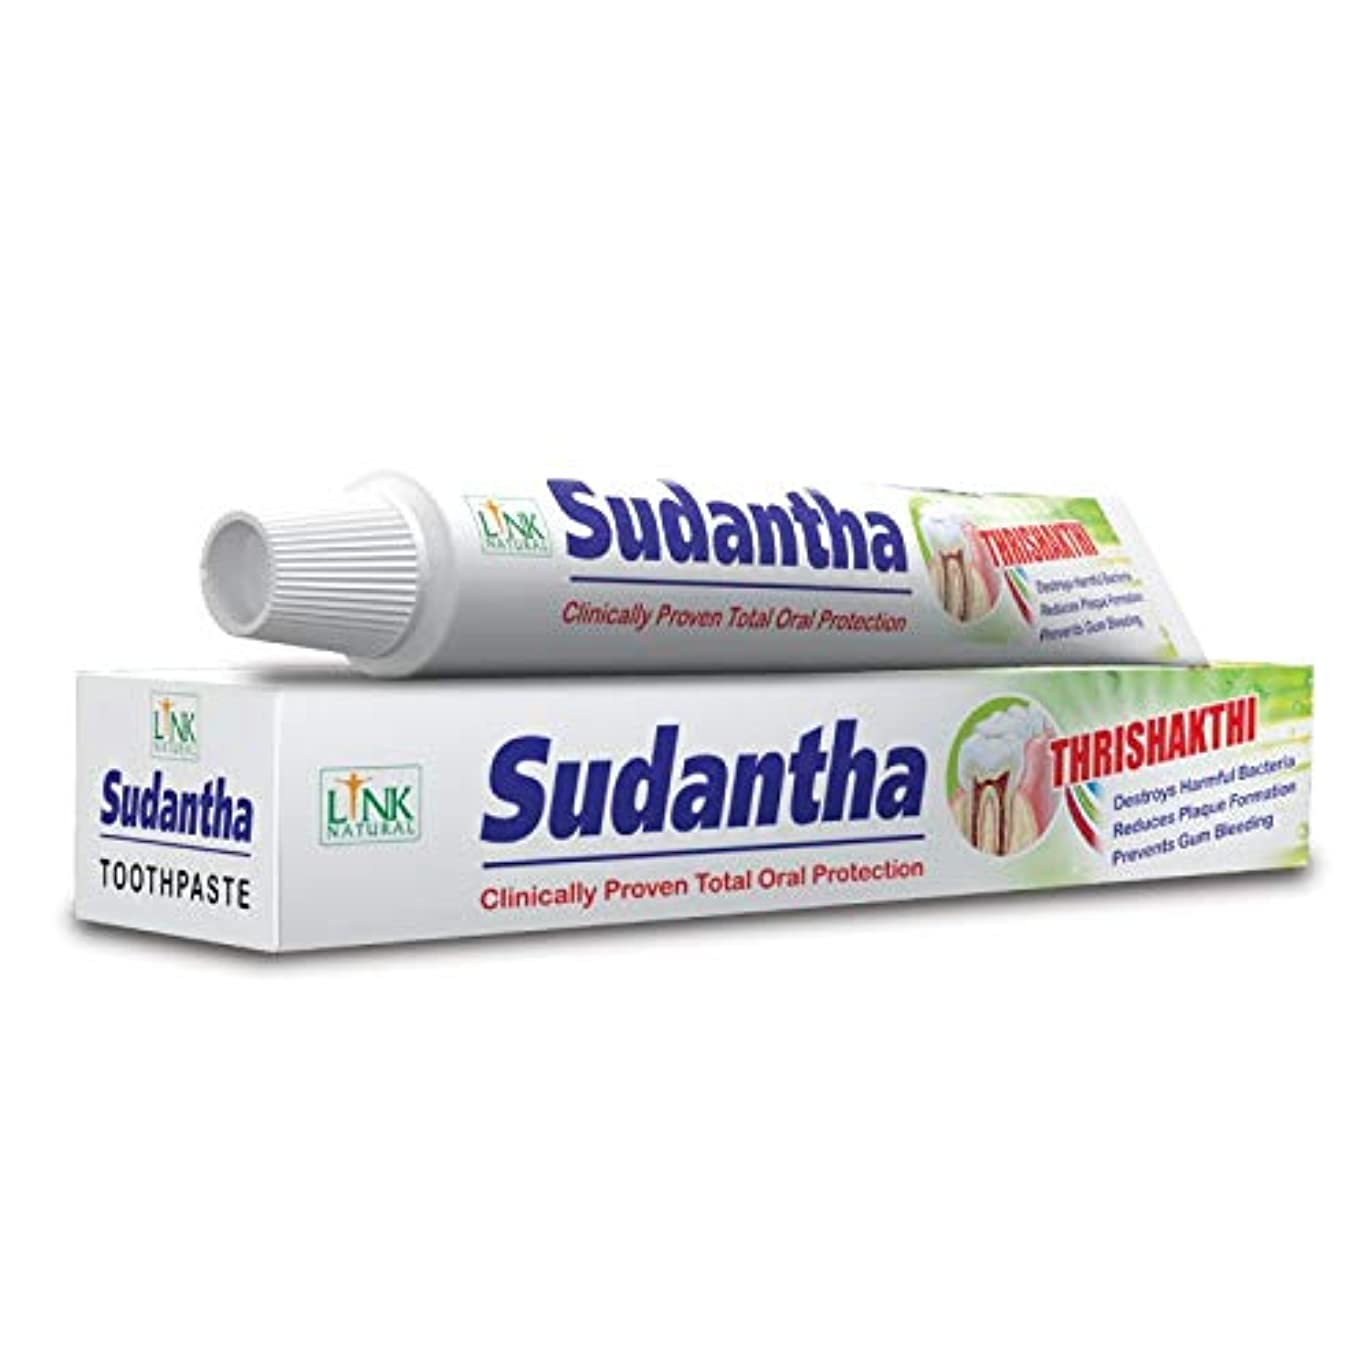 2 x 80 g リンクSudanthaホメオパシーHerbal Toothpaste for合計Oral保護